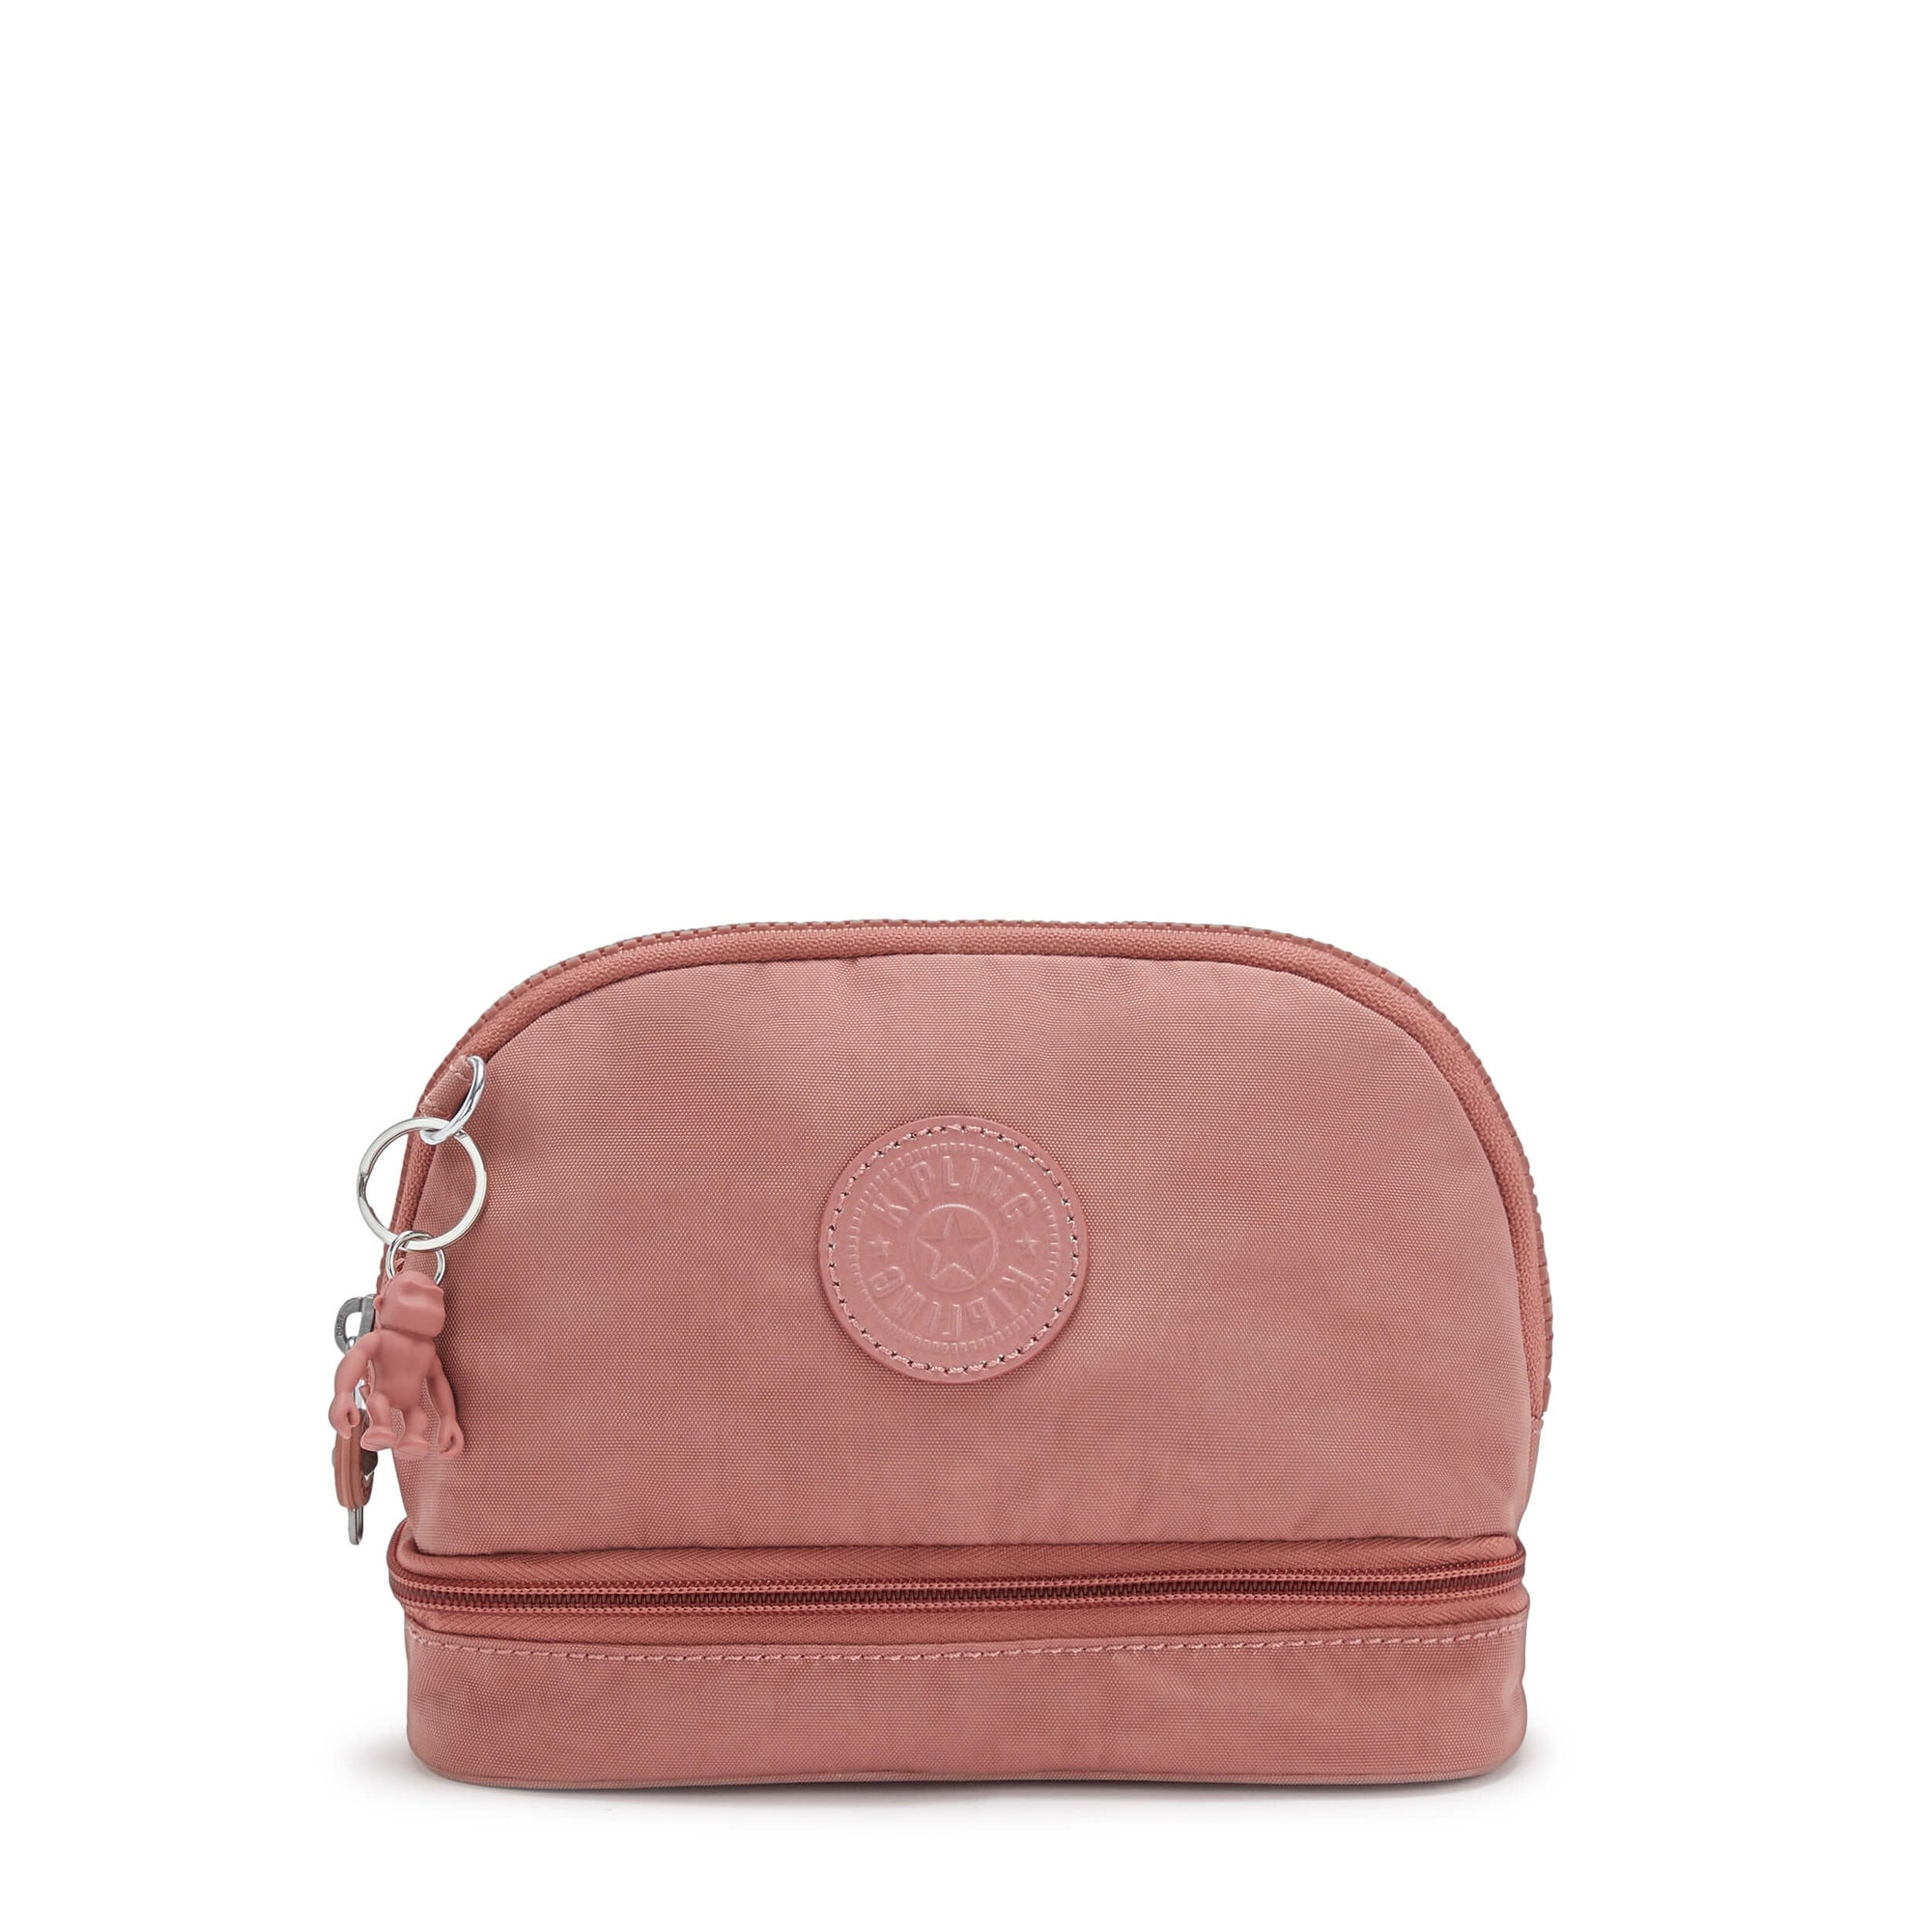 Cosmetiquera Kipling Multi Keeper